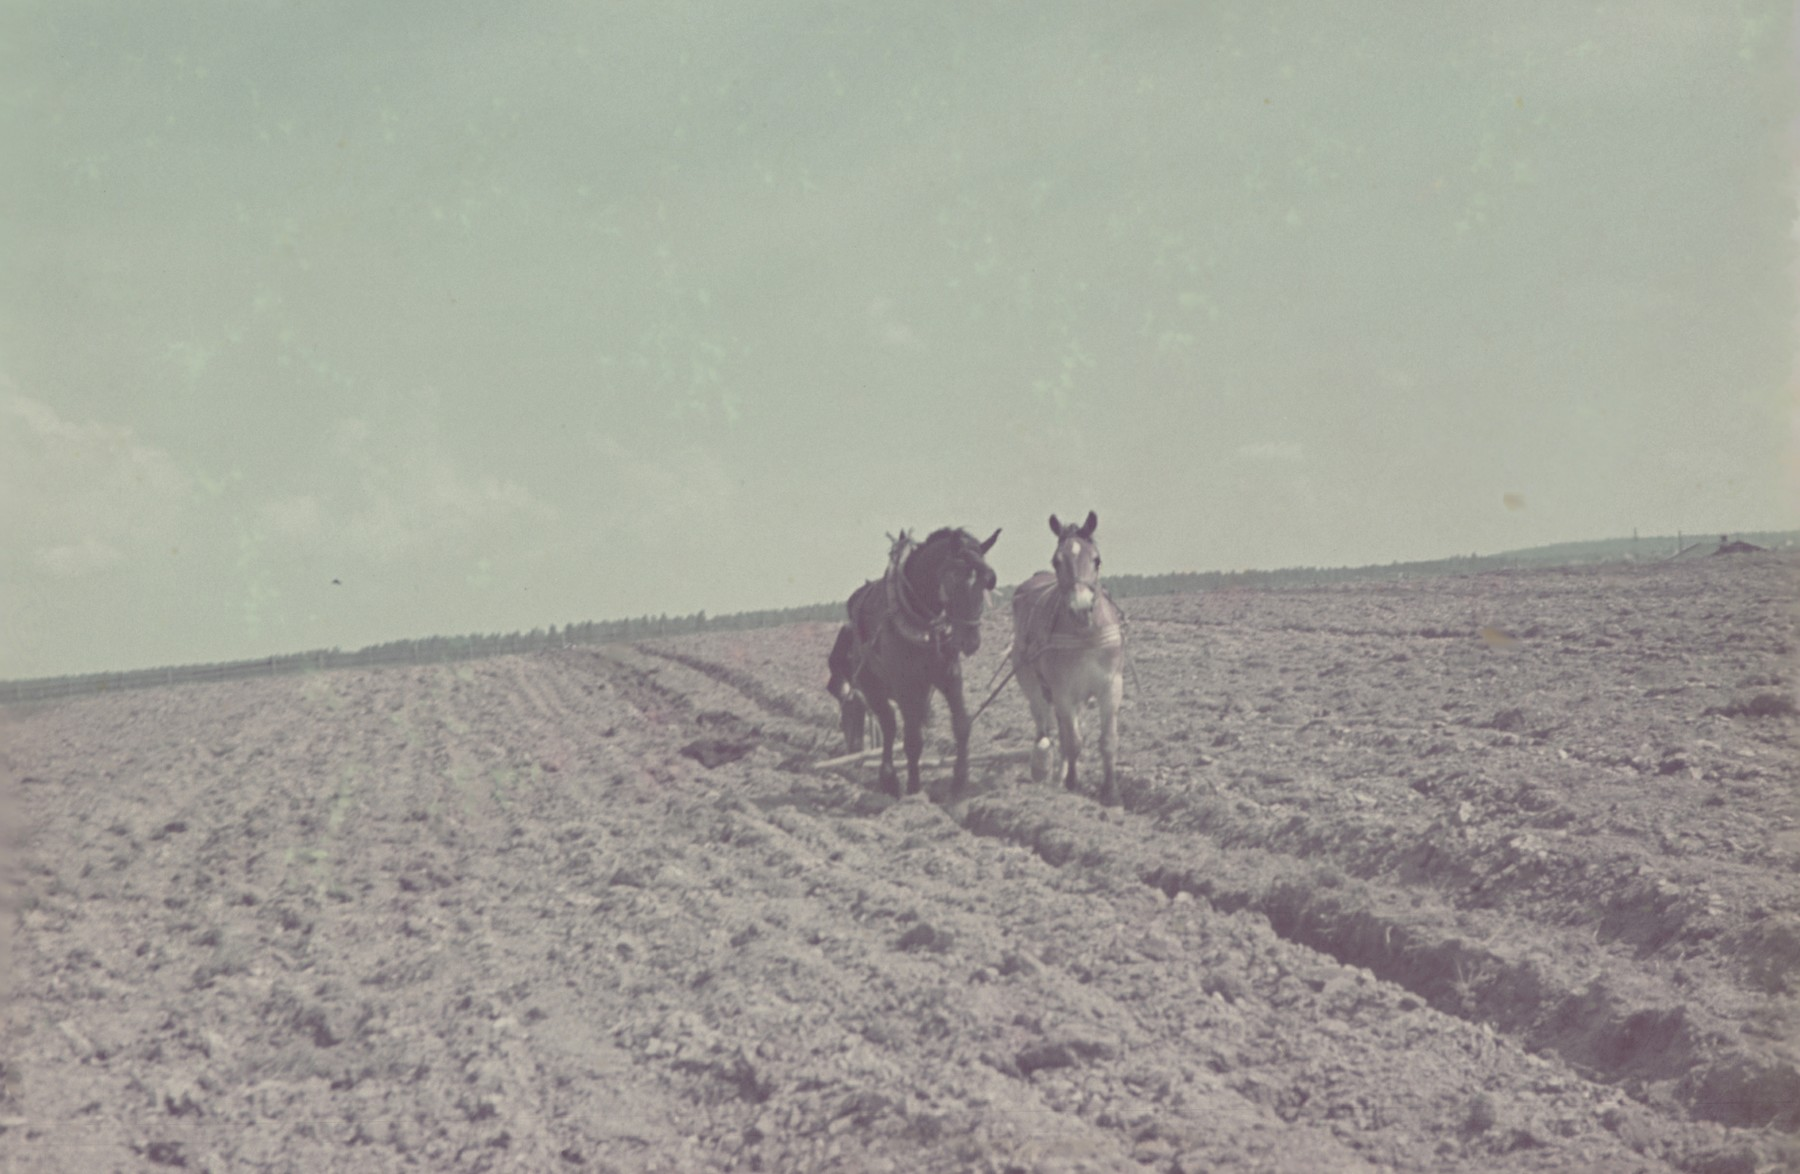 A farmer plowing a field near or in the Lodz ghetto.